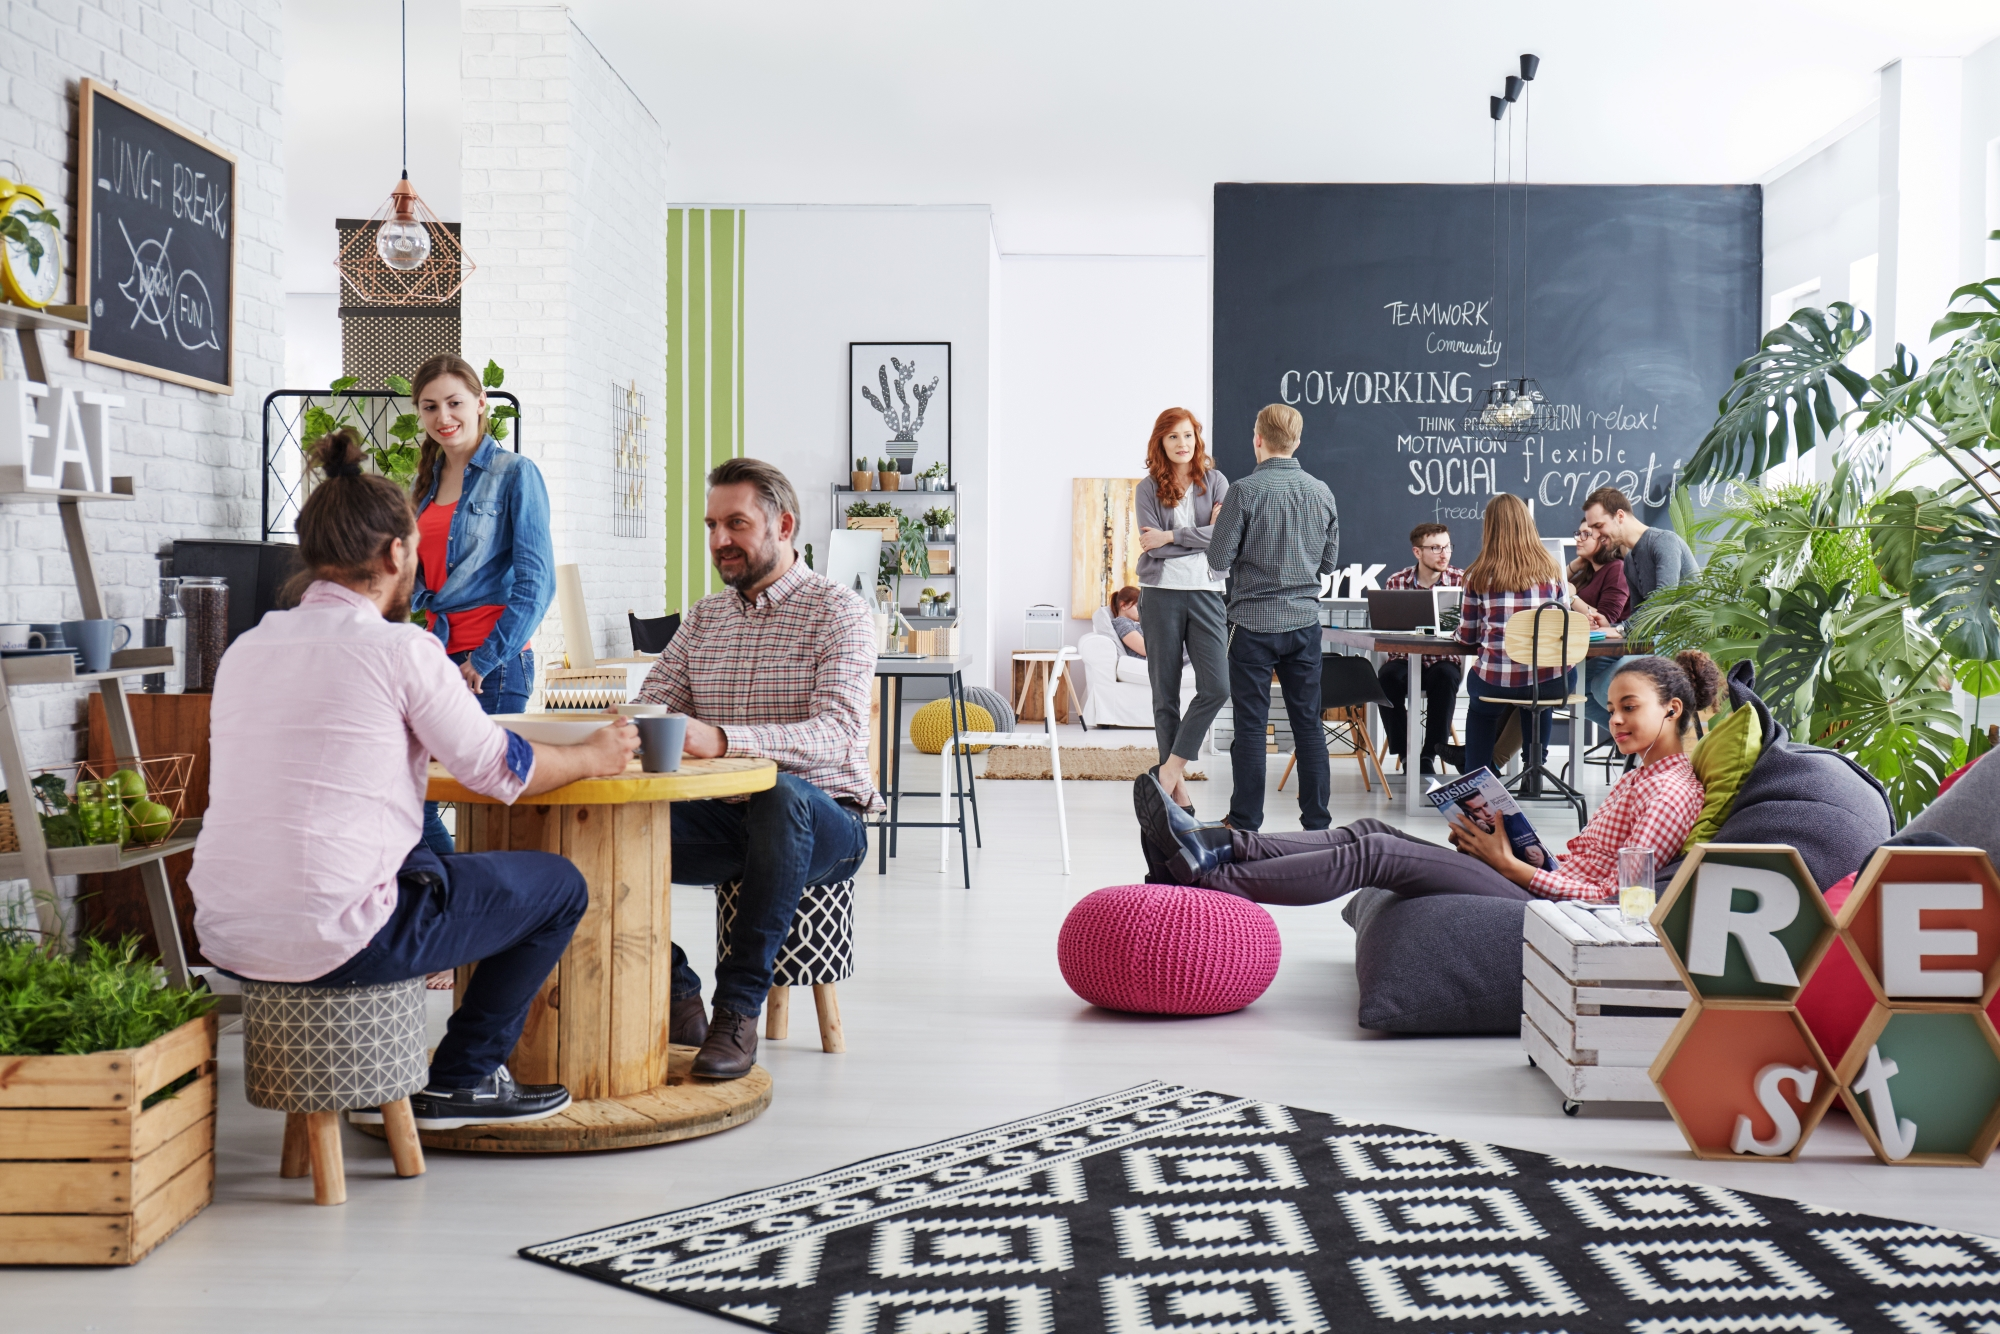 Future of Coworking Spaces